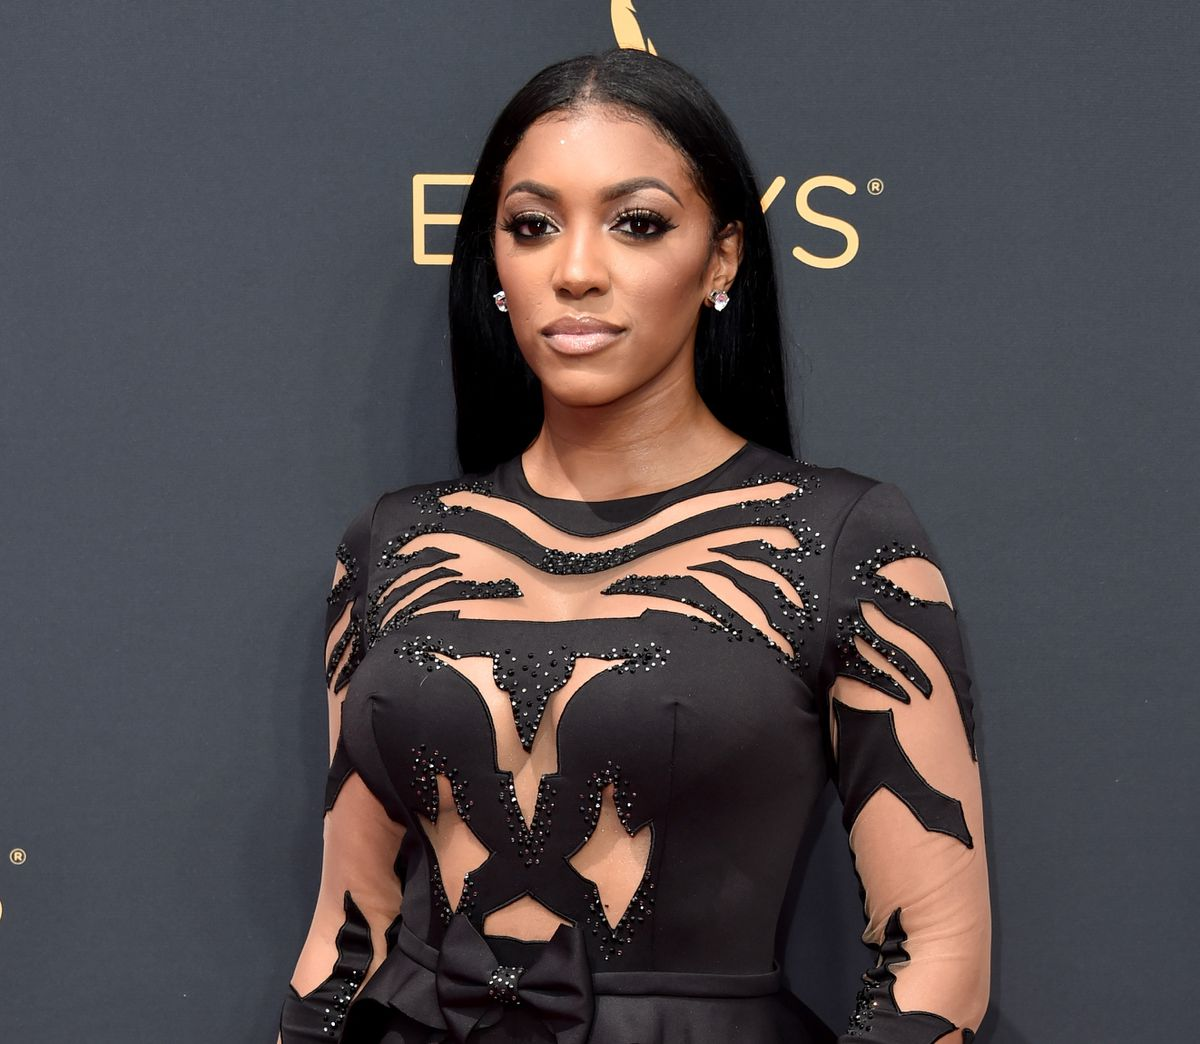 porsha-williams-shares-a-new-photo-featuring-pj-and-makes-fans-day